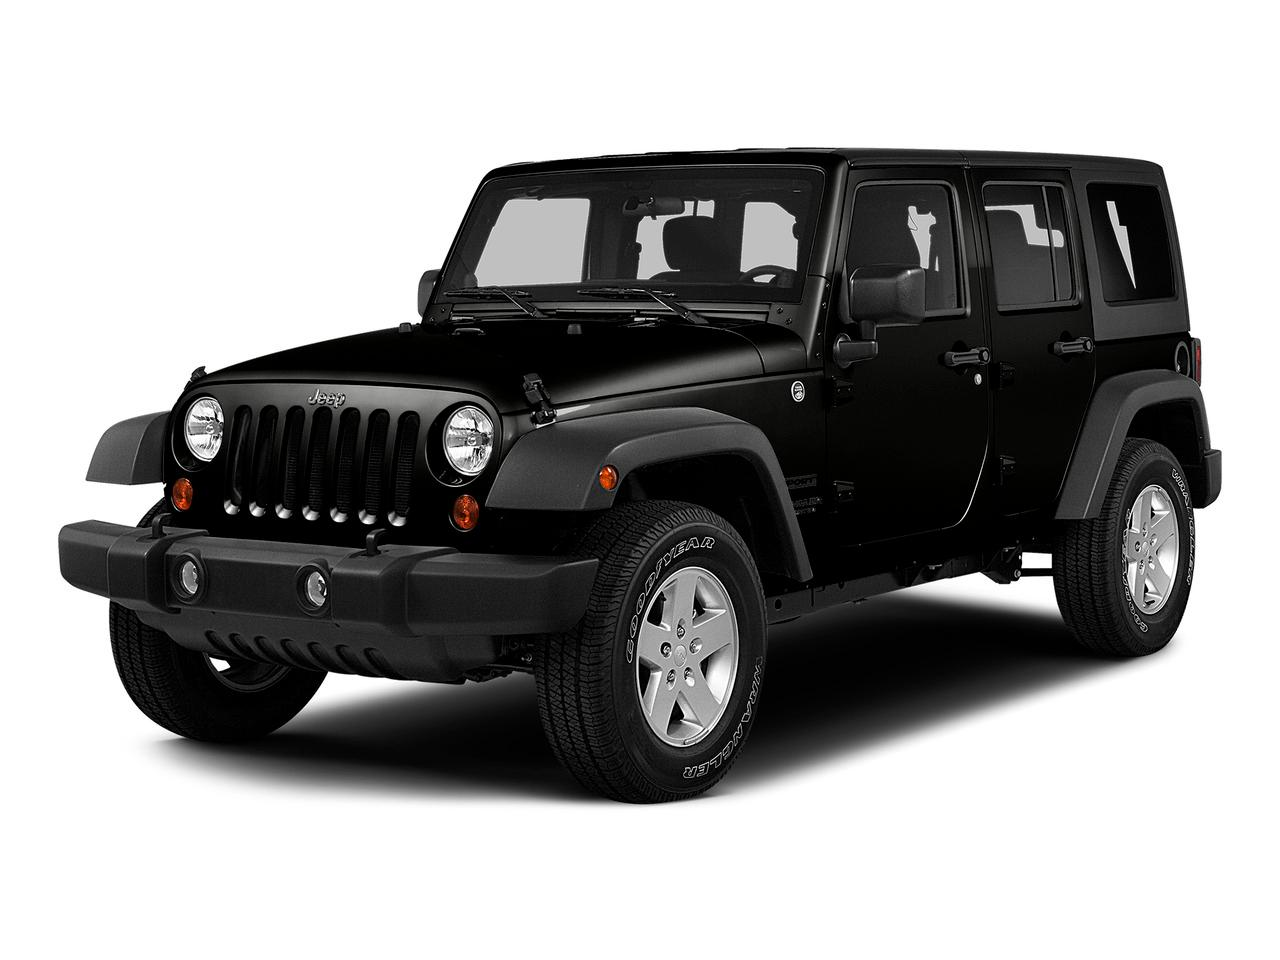 2015 Jeep Wrangler Unlimited Vehicle Photo in Colma, CA 94014